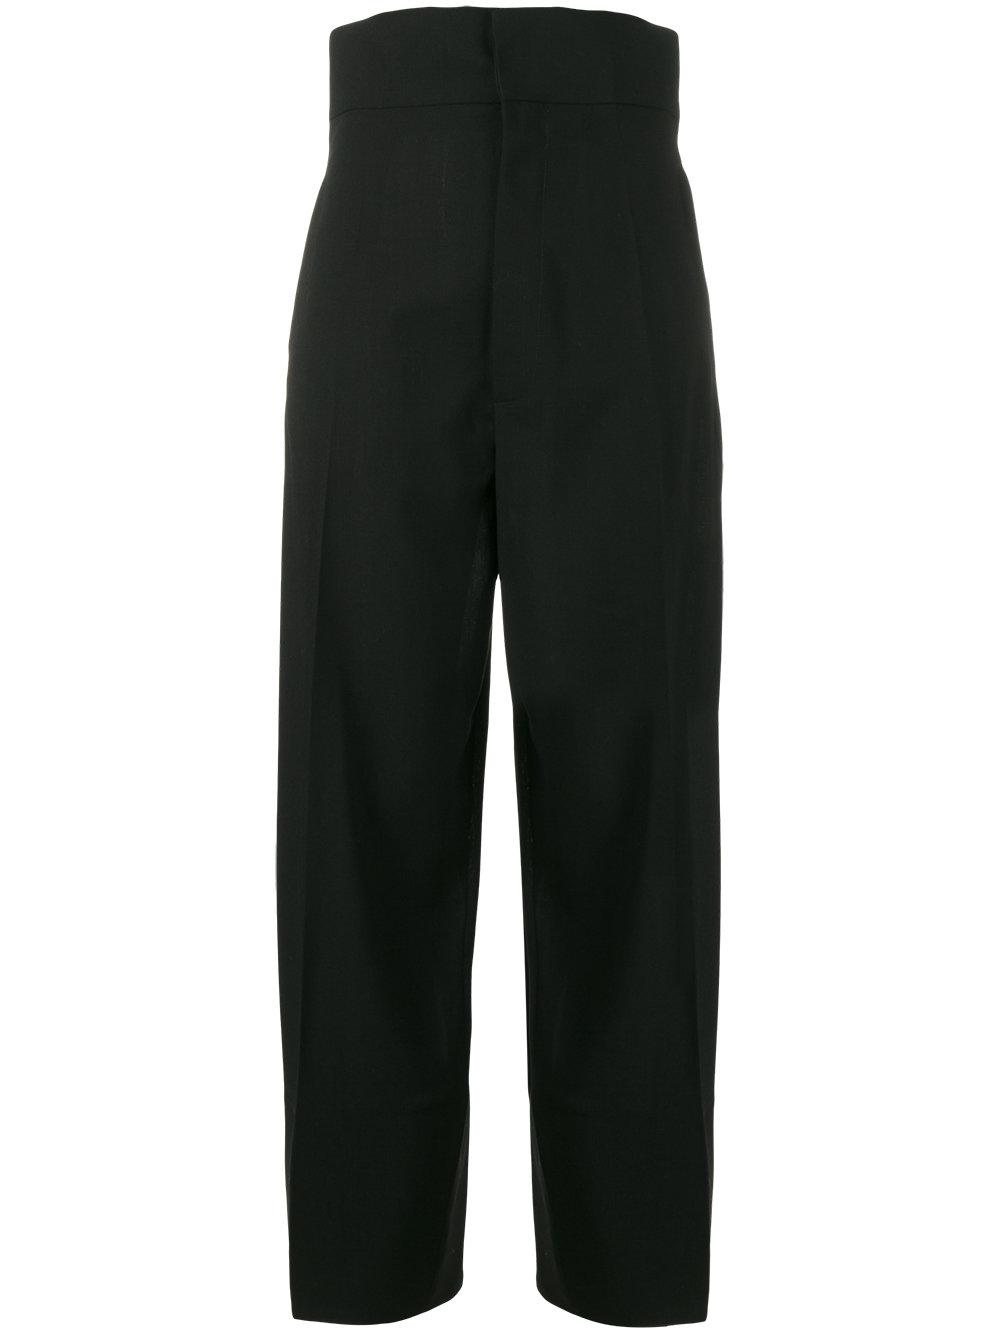 View More cropped high waisted trousers Related Products: cropped high waisted jeans high waisted cropped jeans high waisted cropped pantes high waisted cropped jean.